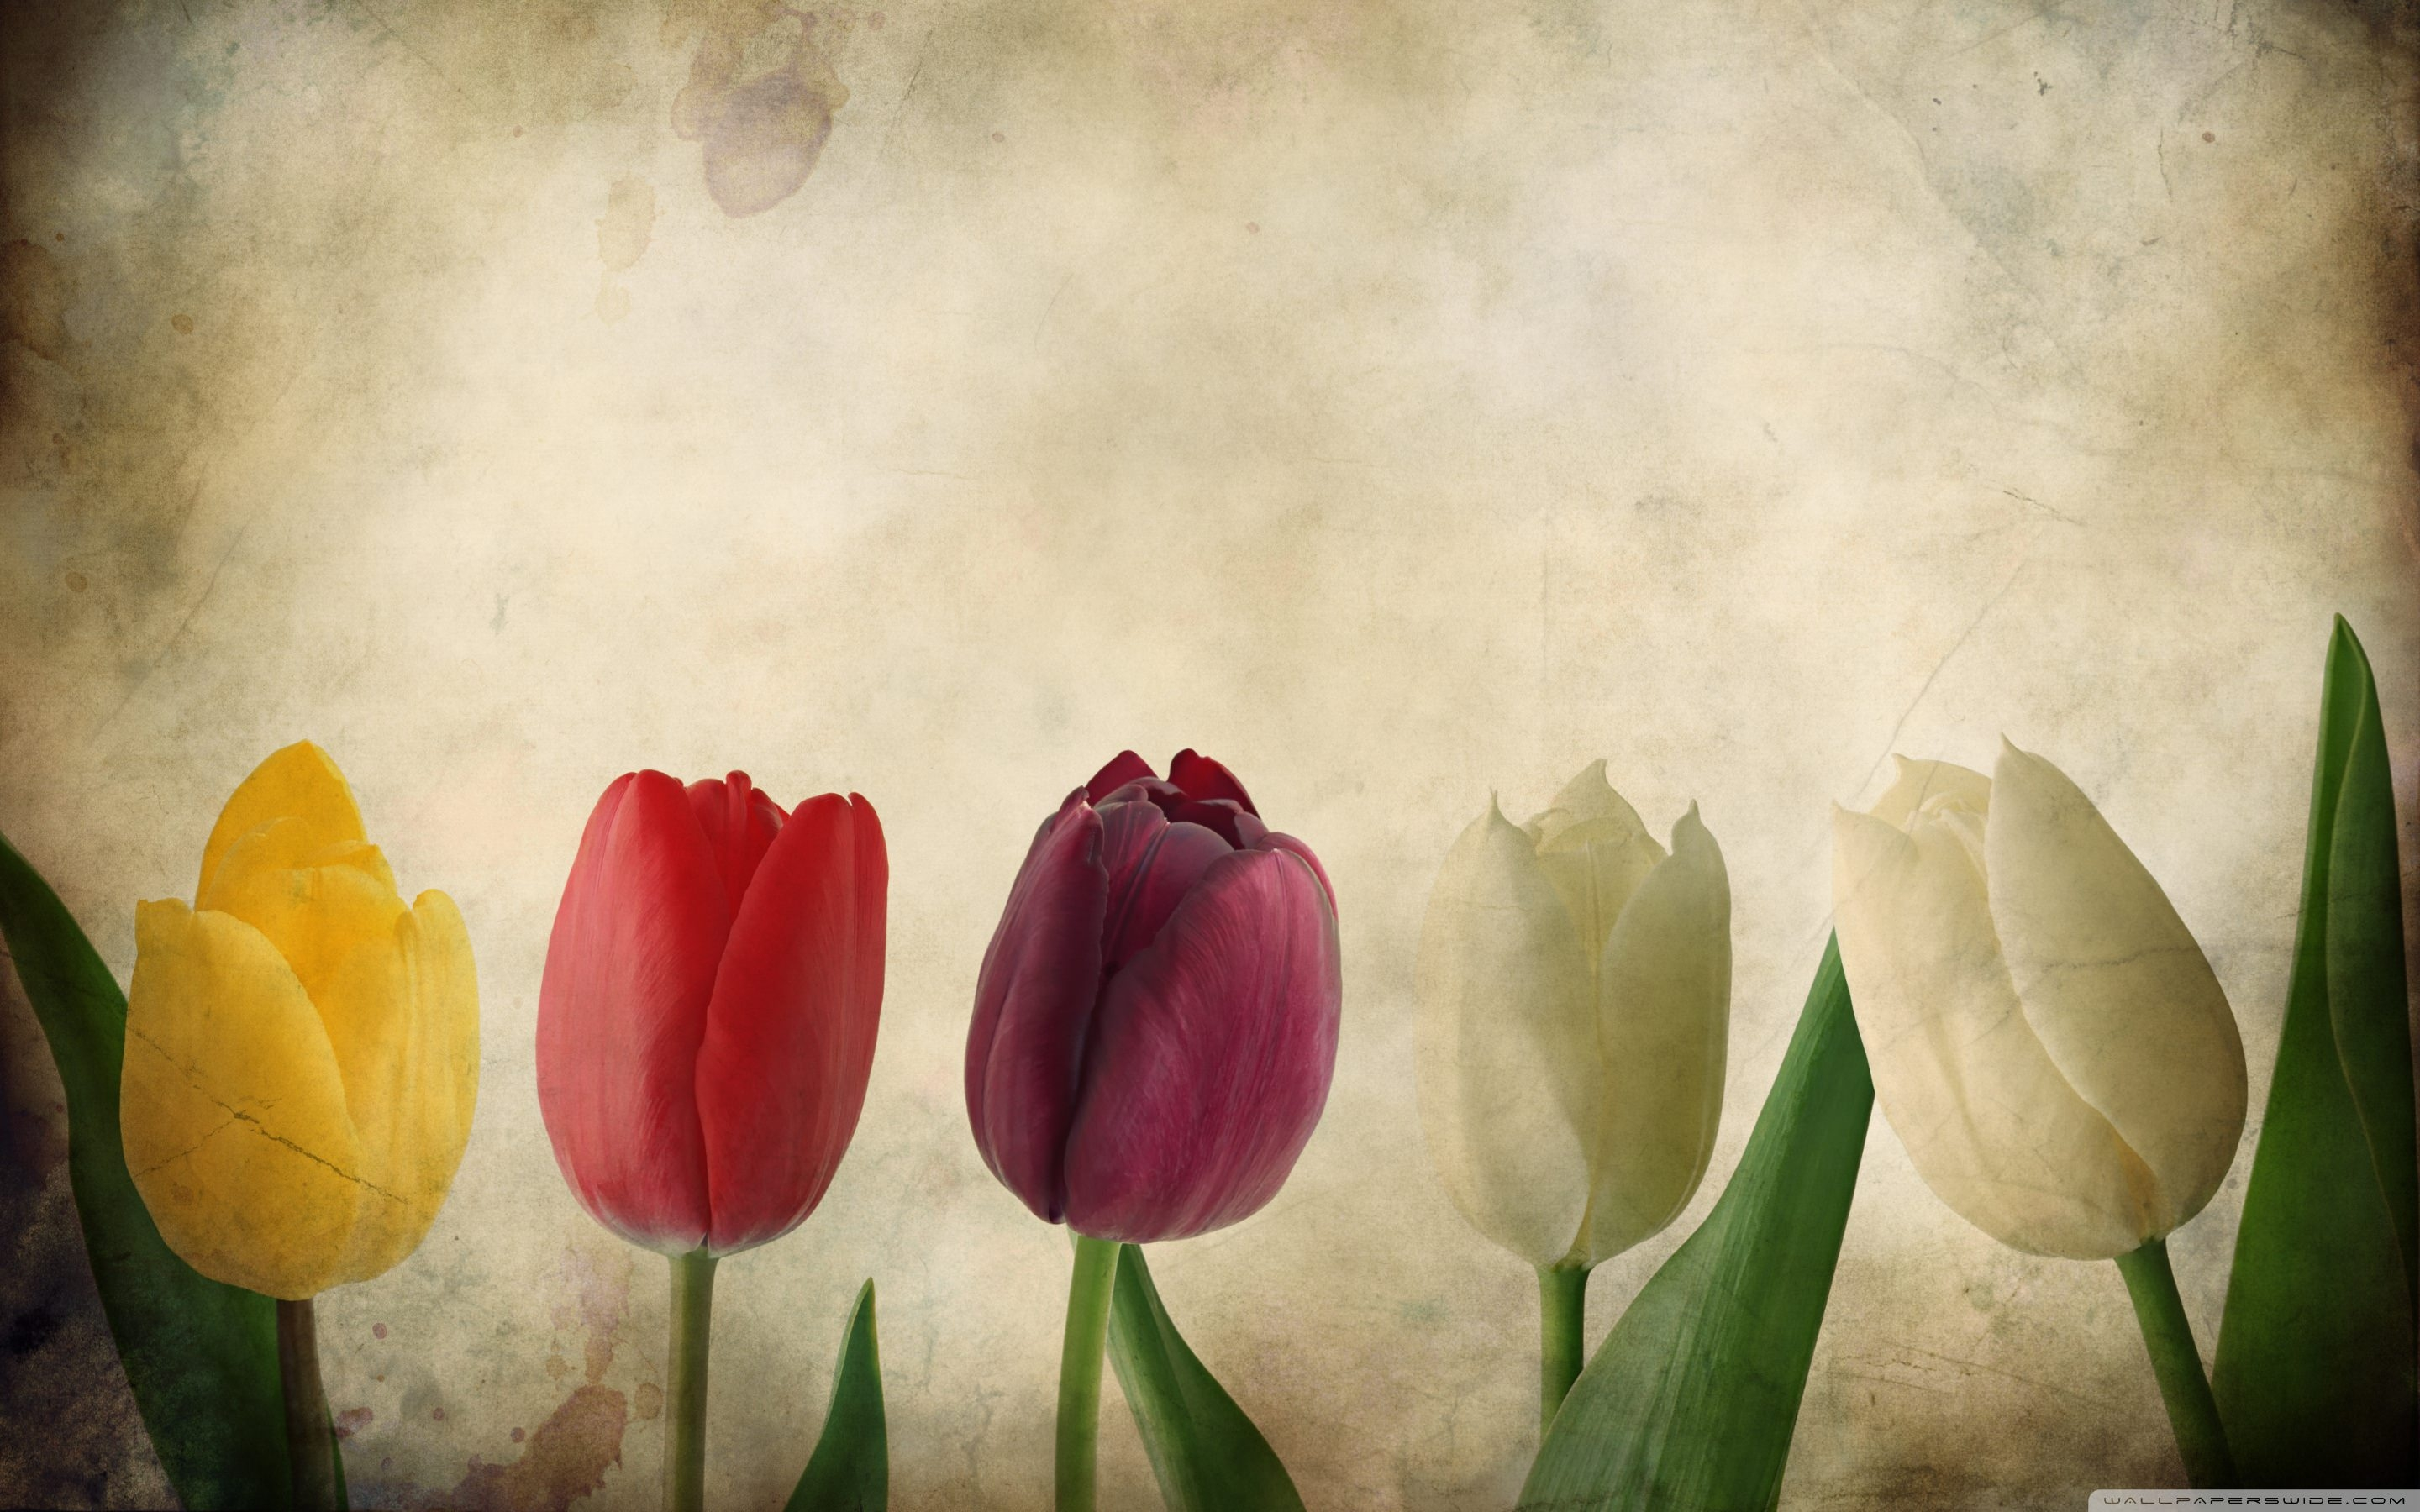 gorgeous-tulips-flowers-vintage-wallpaper-hd-free-desktop